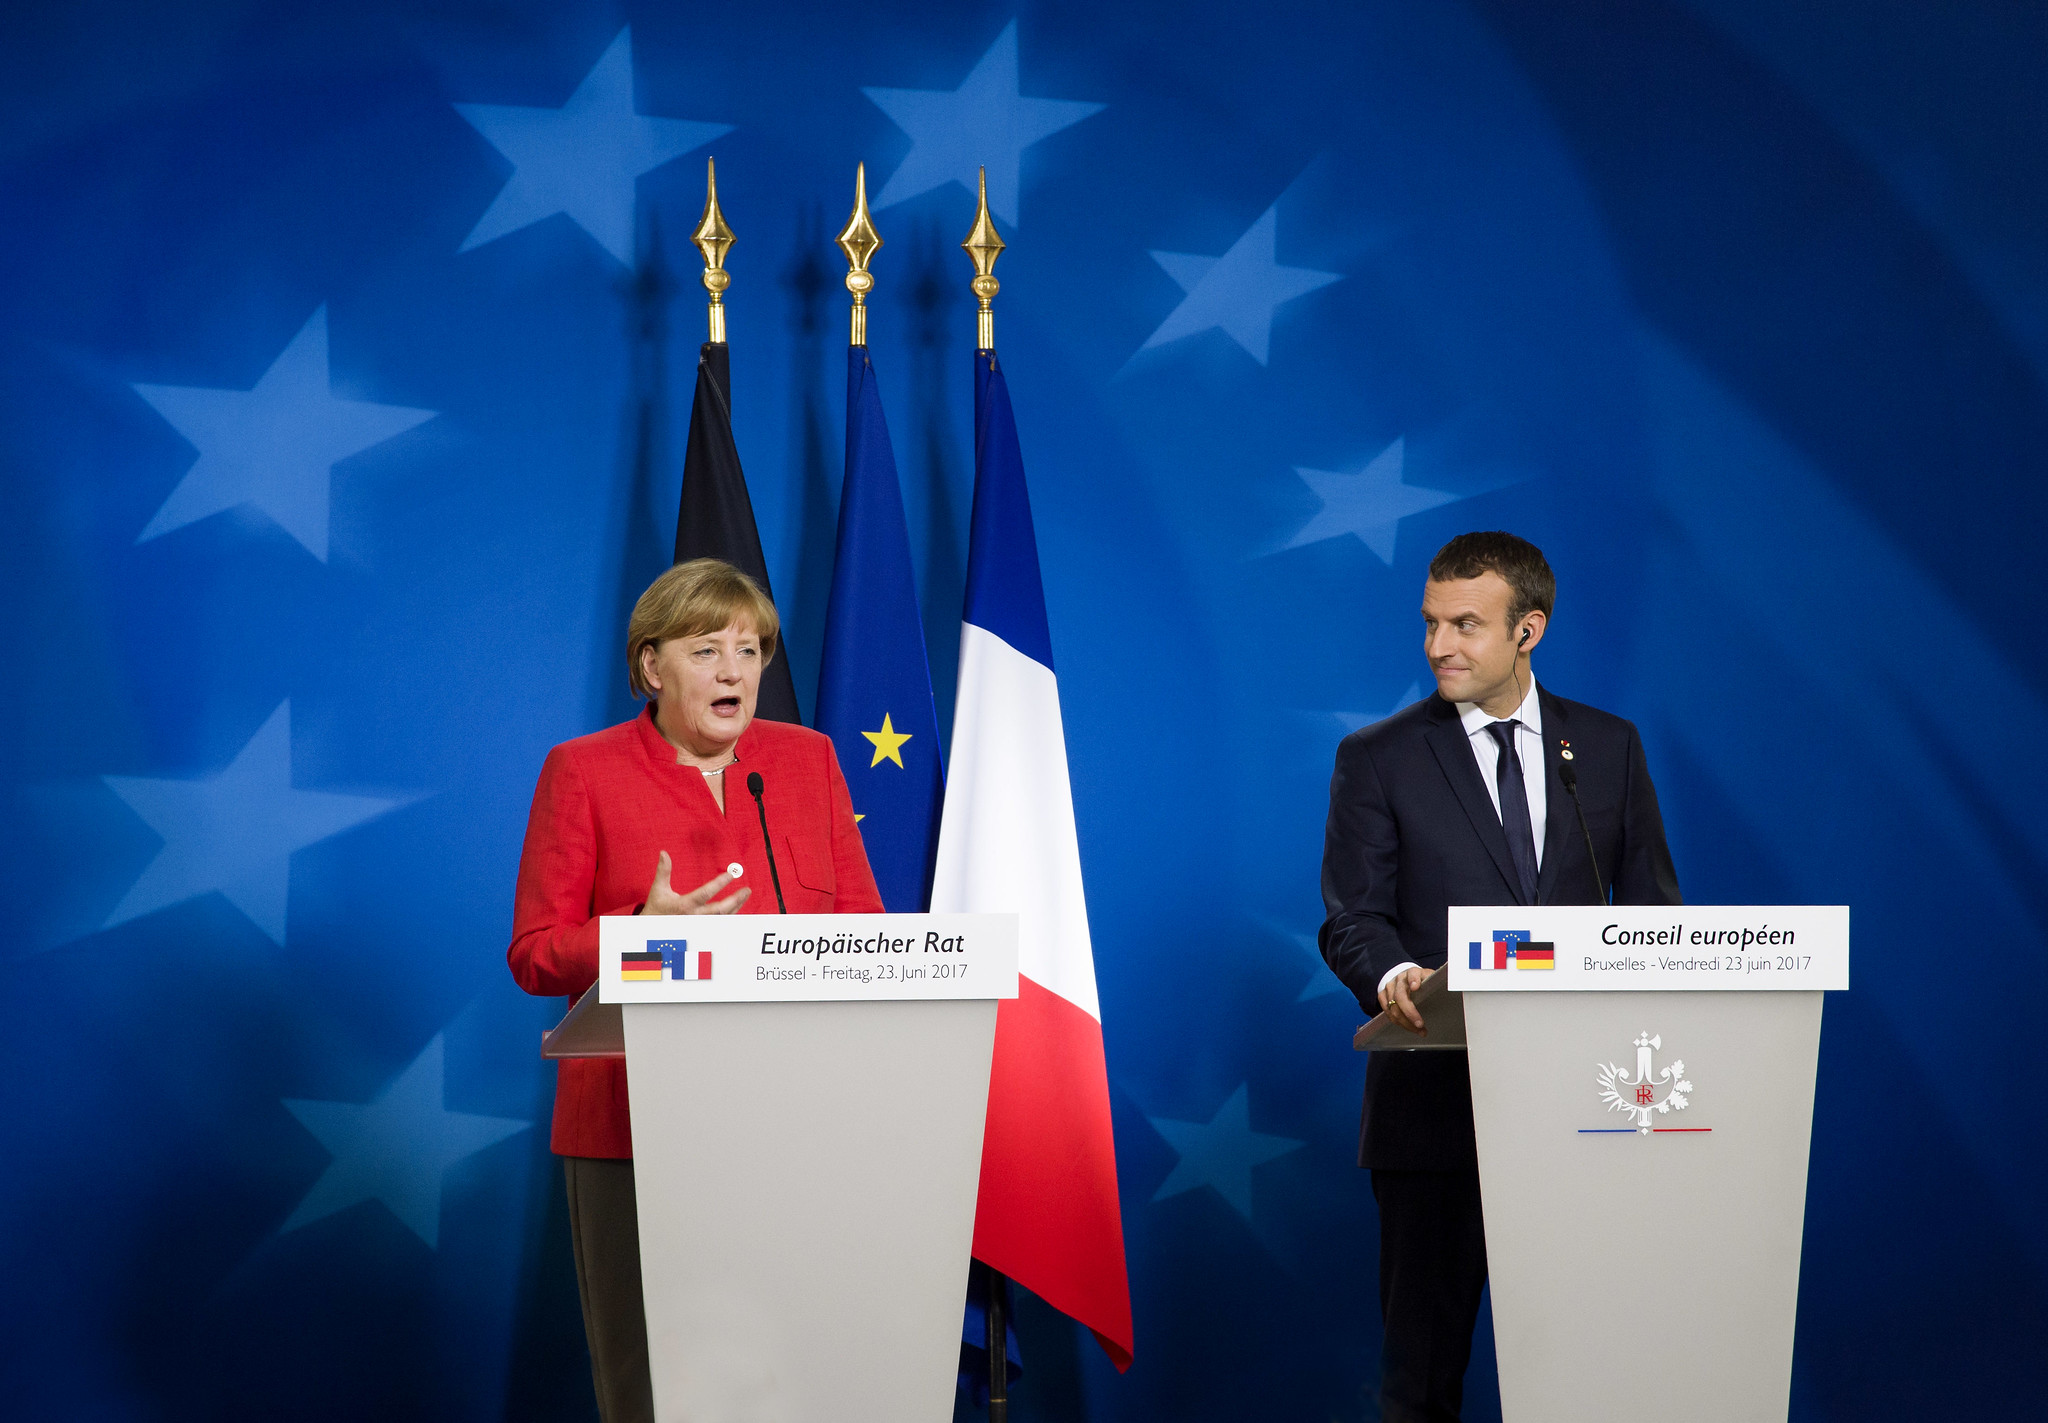 Angela Merkel and Emmanuel Macron at a European Council meeting in 2017